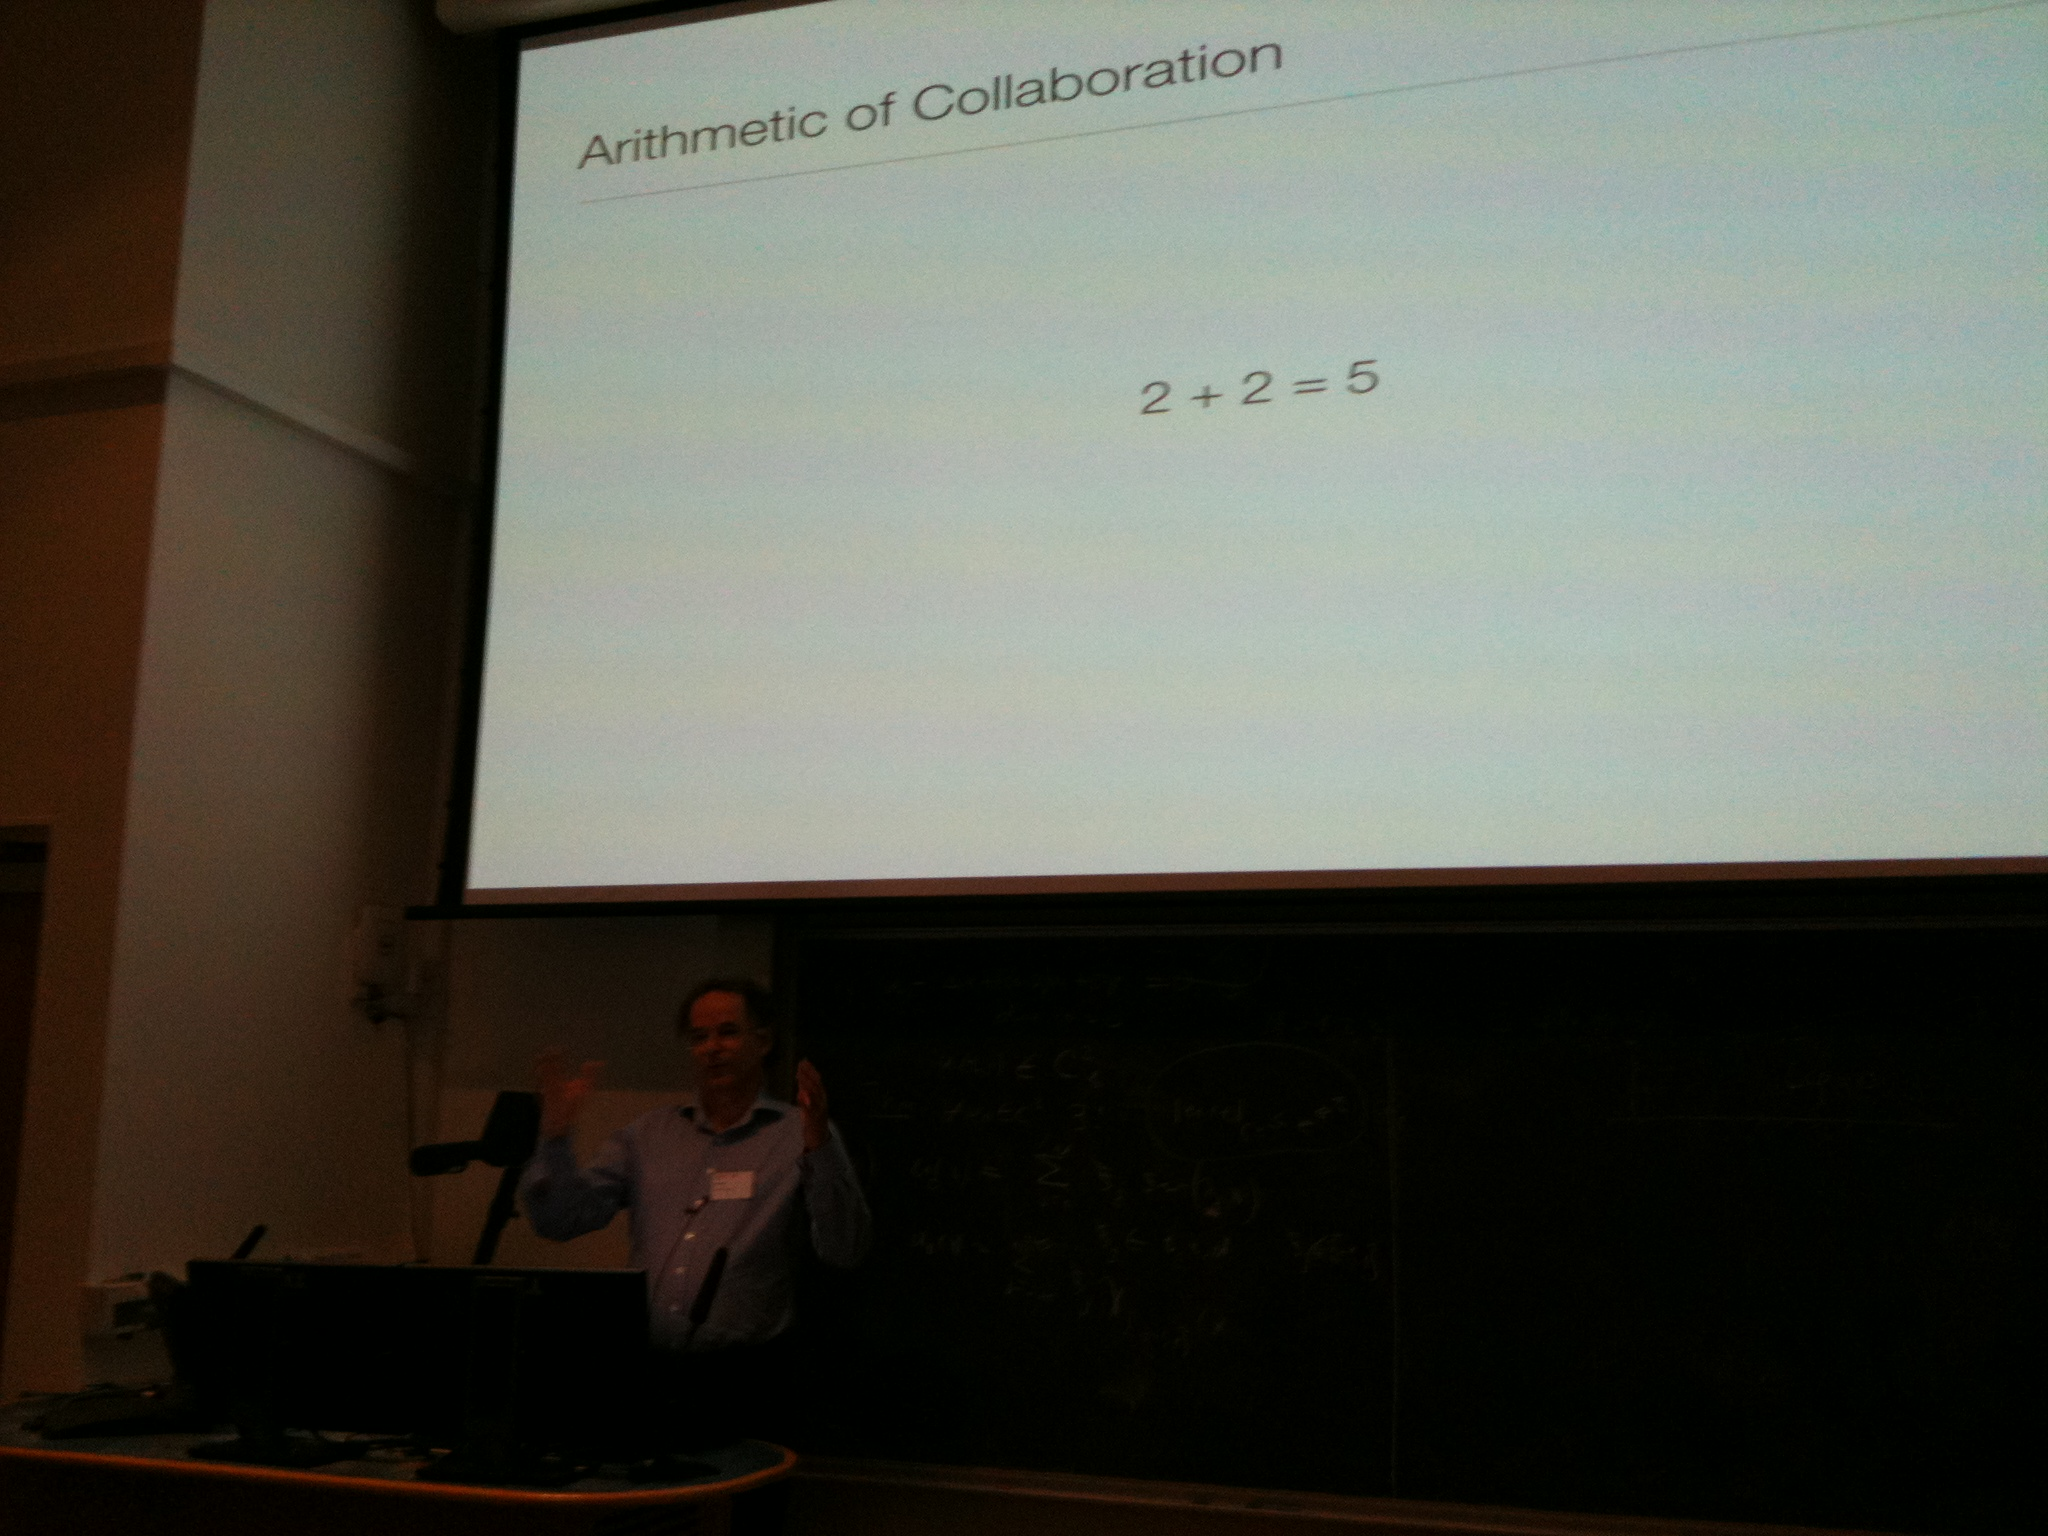 John Norman ponders the arithmatic of collaboration